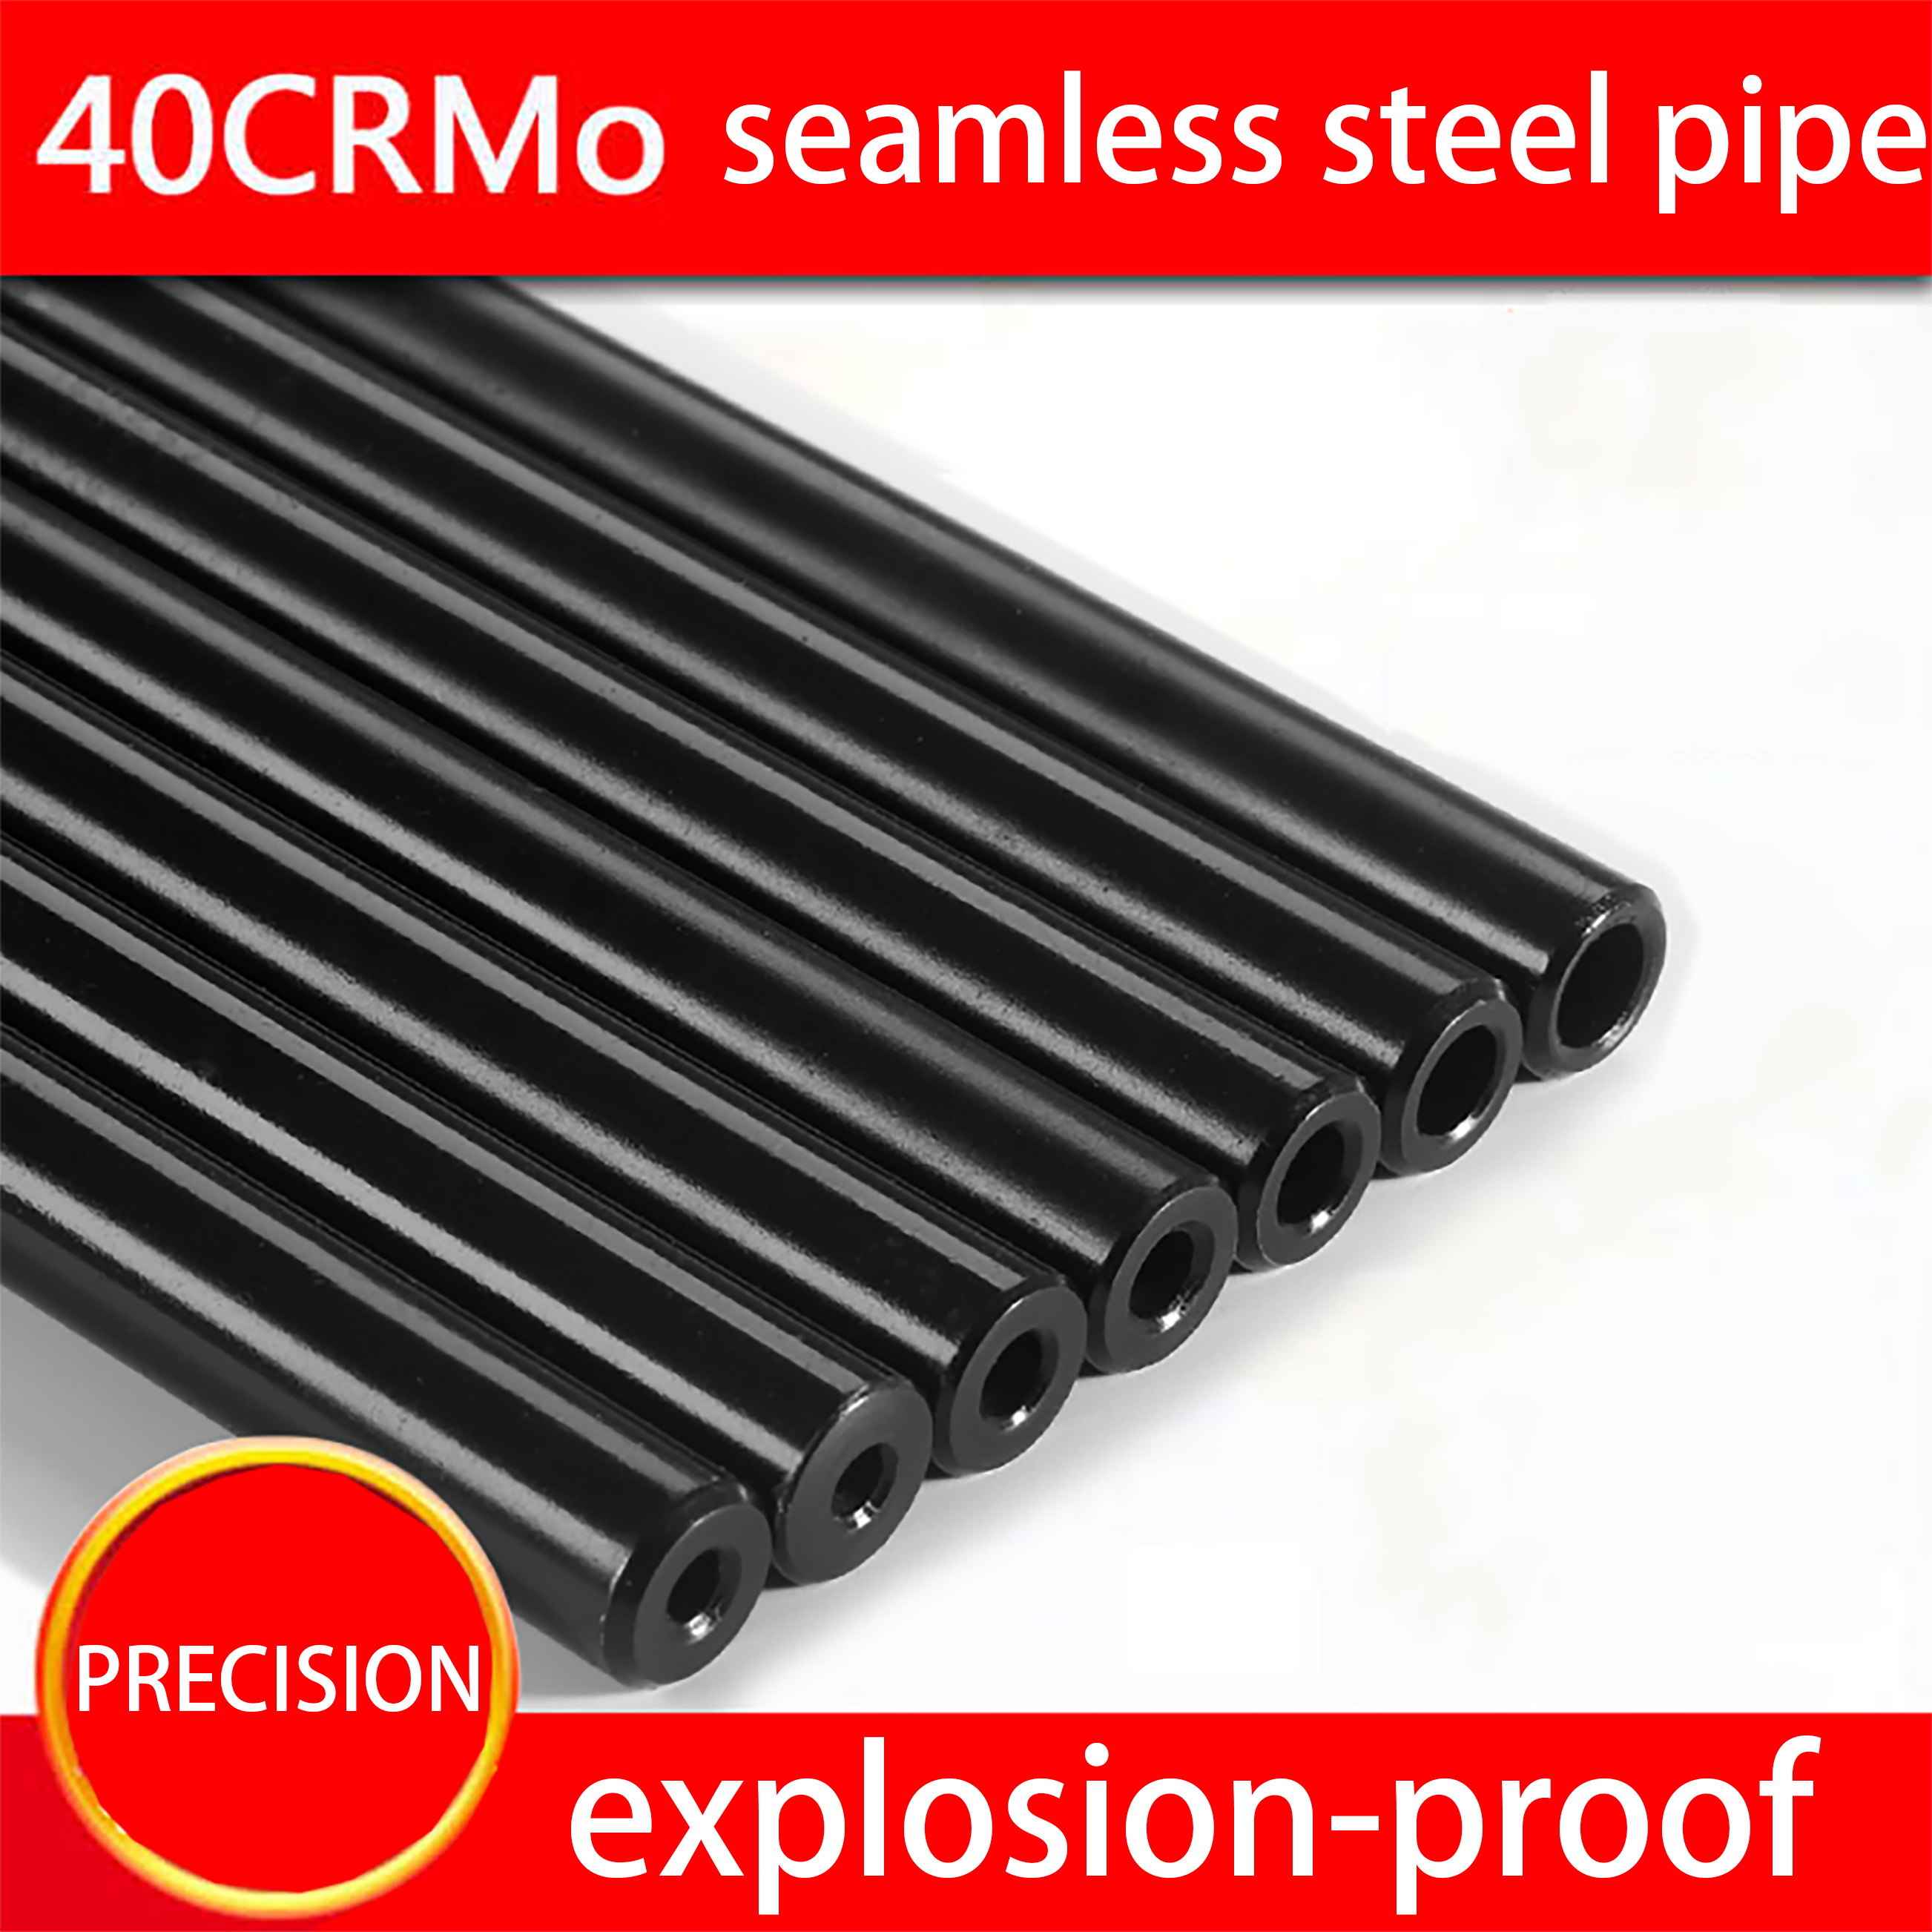 O/D 25mm Seamless Steel Pipe Structural Tube Explosion-proof Steel Pipe Home DIY Tools